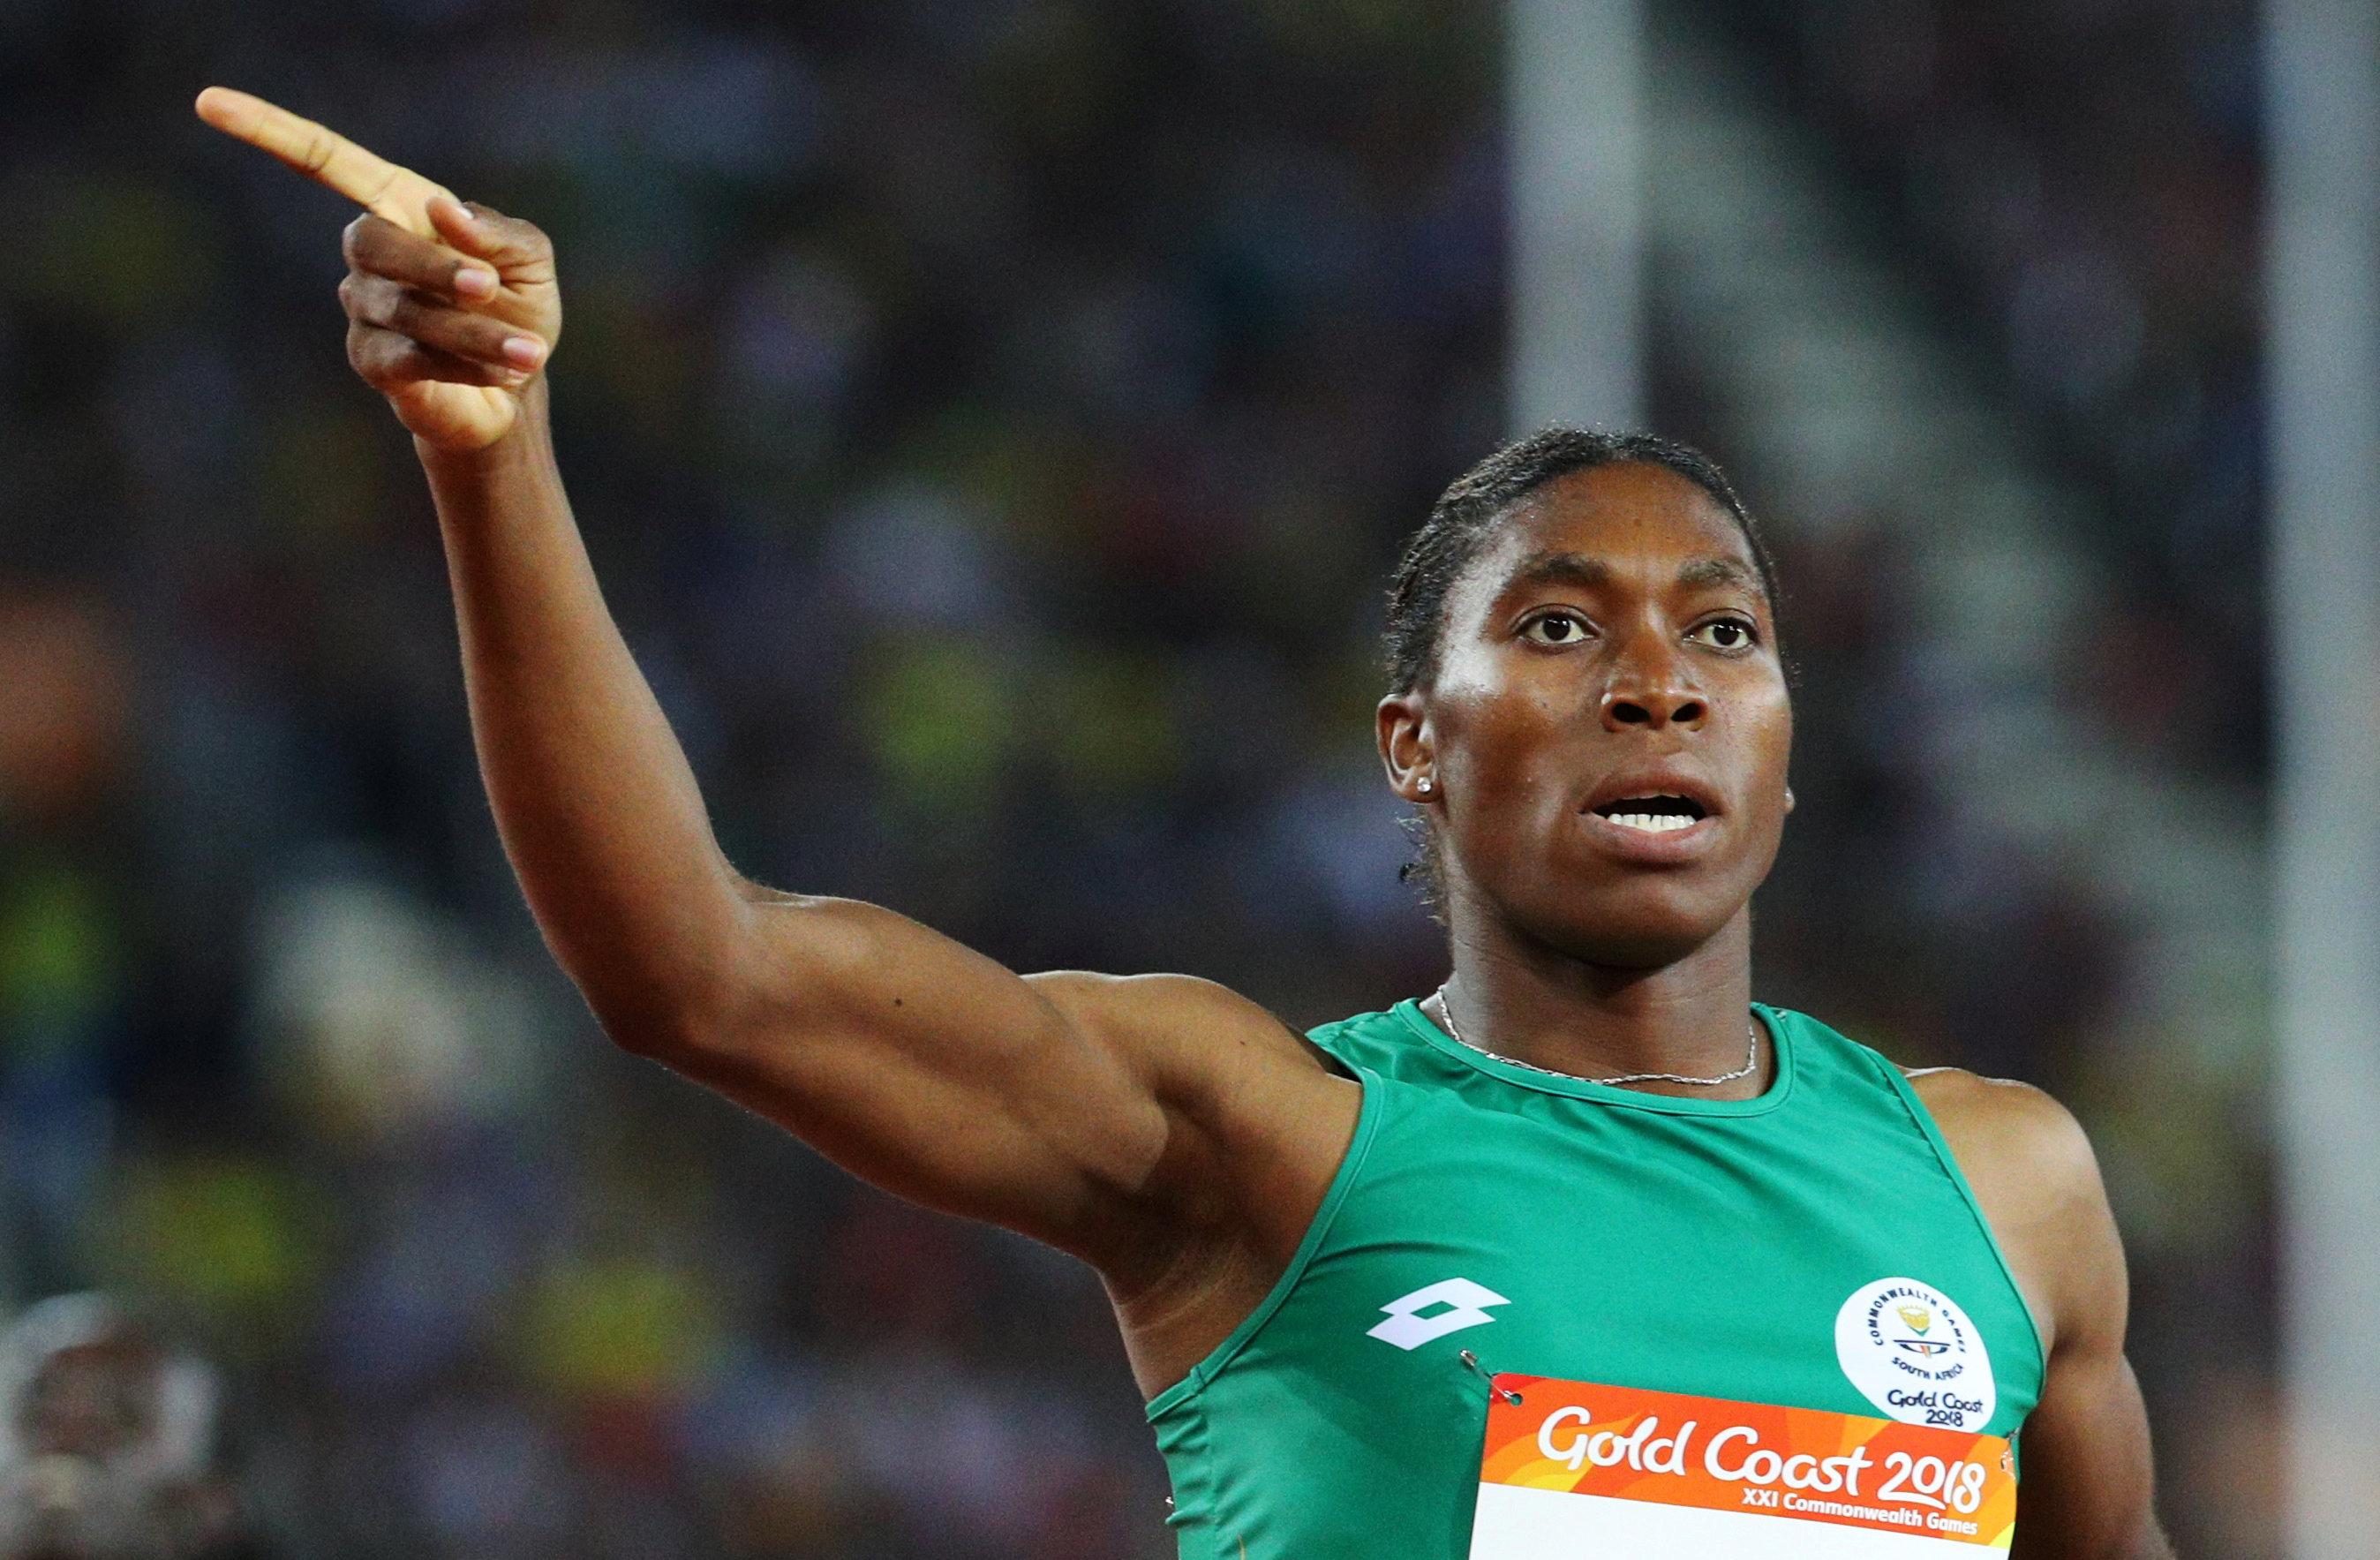 The IAAF's policy change has caused controversy all over the world